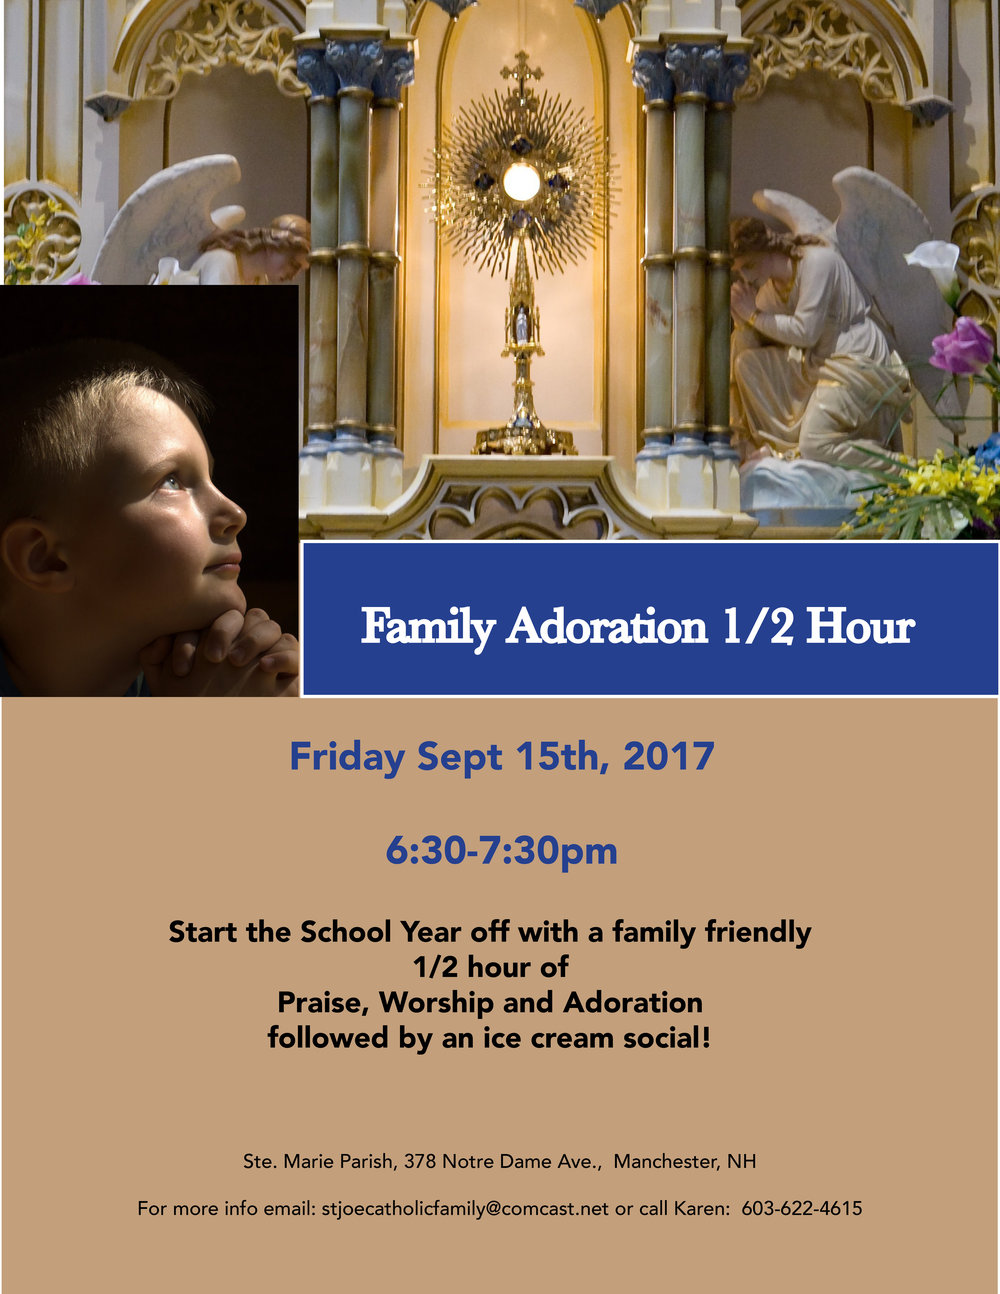 Family Adoration Flyer.jpg